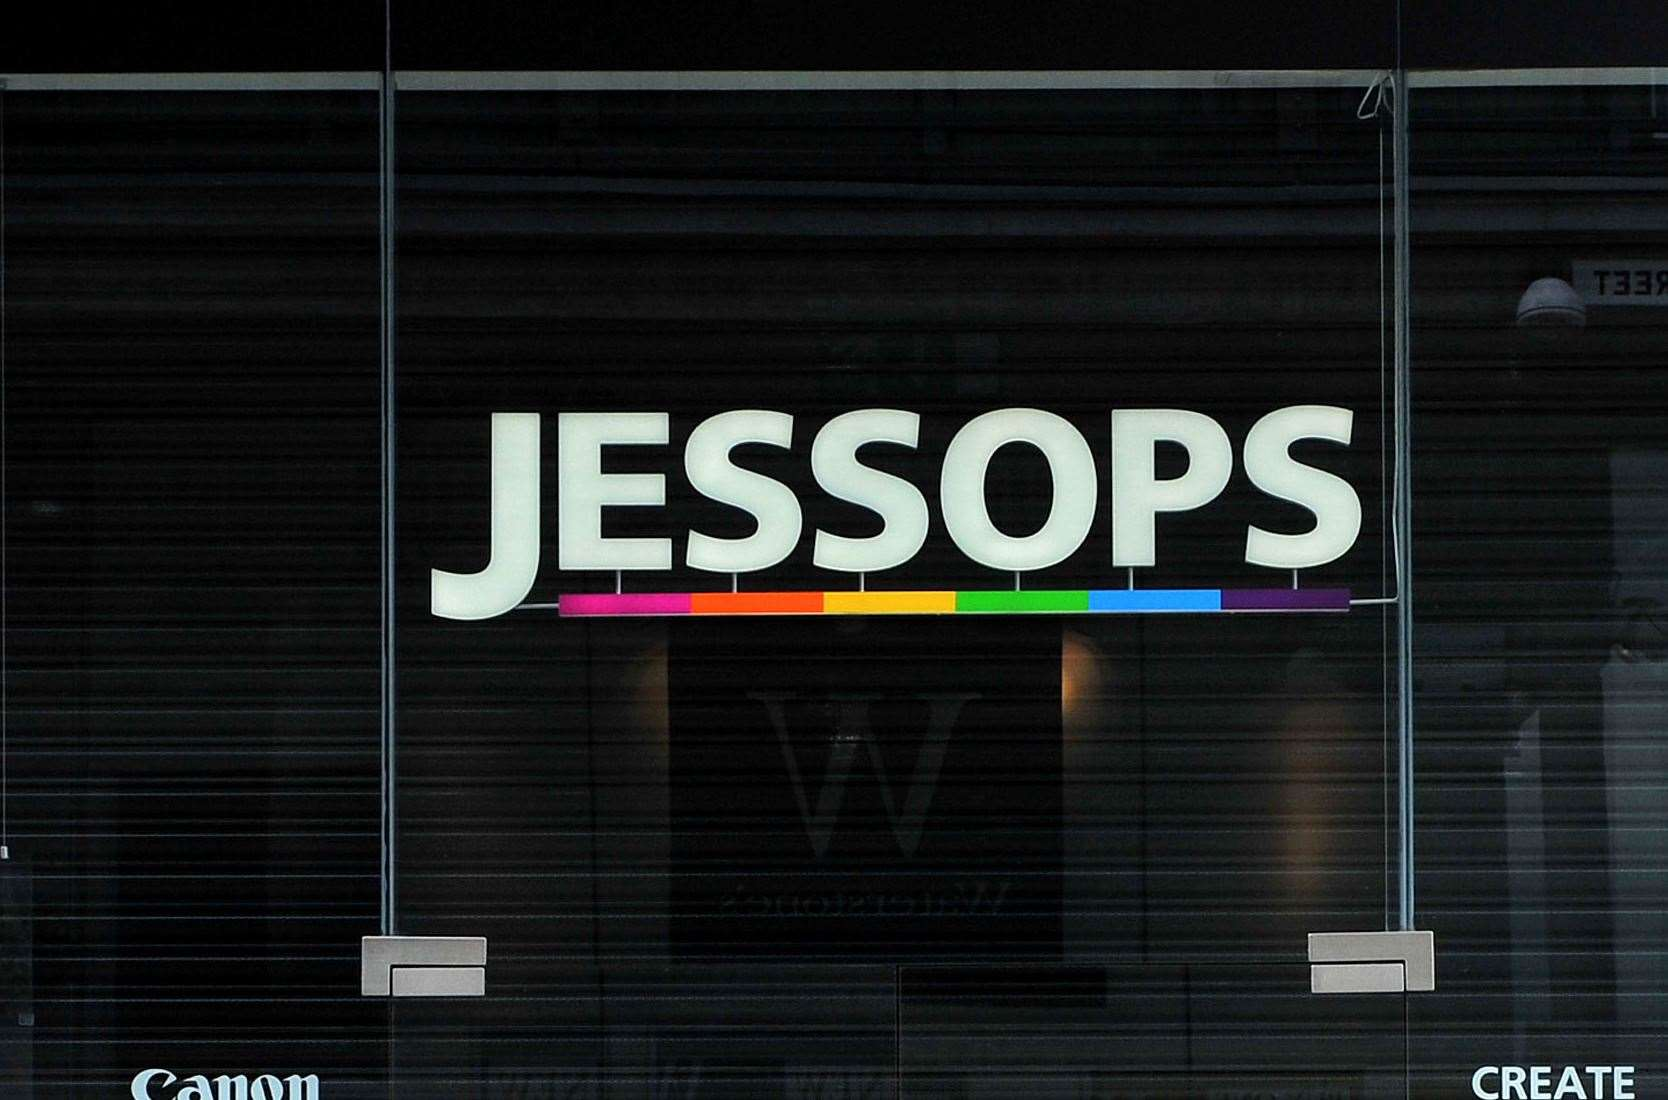 Jessops is now in administration